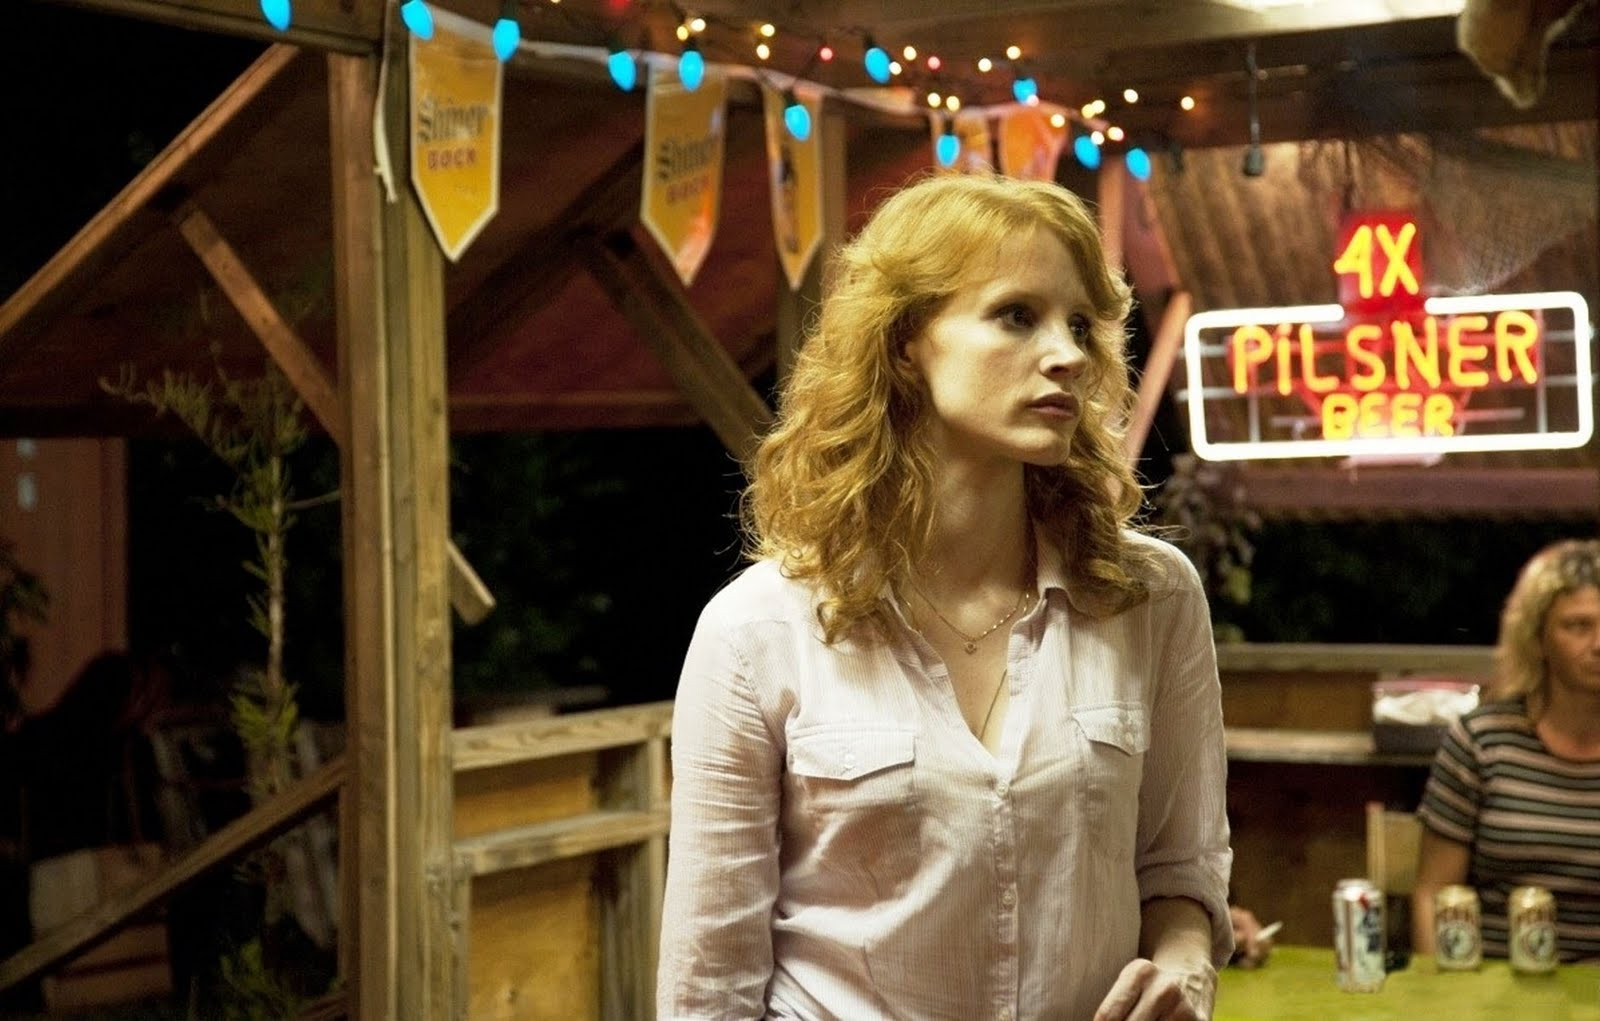 http://4.bp.blogspot.com/-CgBuB3STeUk/TmNGQDmuBjI/AAAAAAAAB0k/2D2FxbVk_xo/s1600/texas-killing-fields-movie-Jessica_Chastain-7.jpg